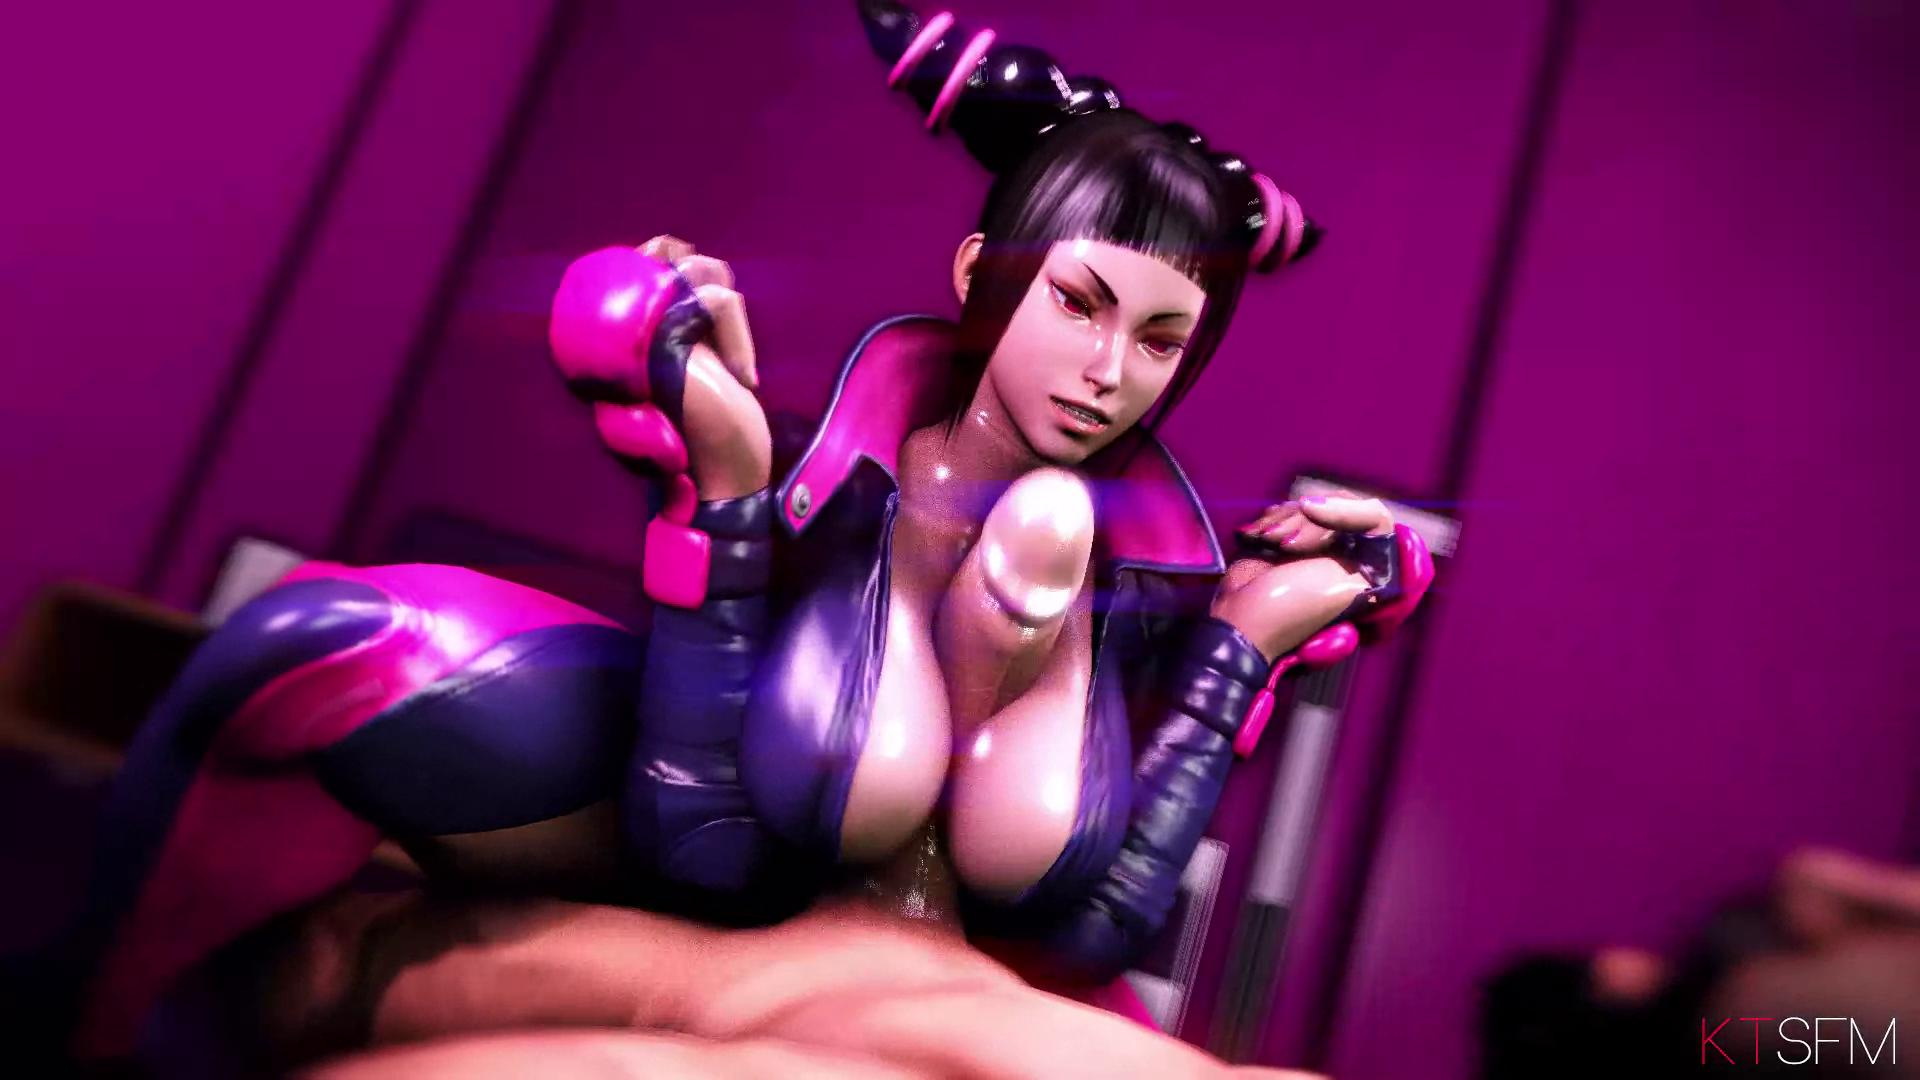 Juri Han Riding Cock